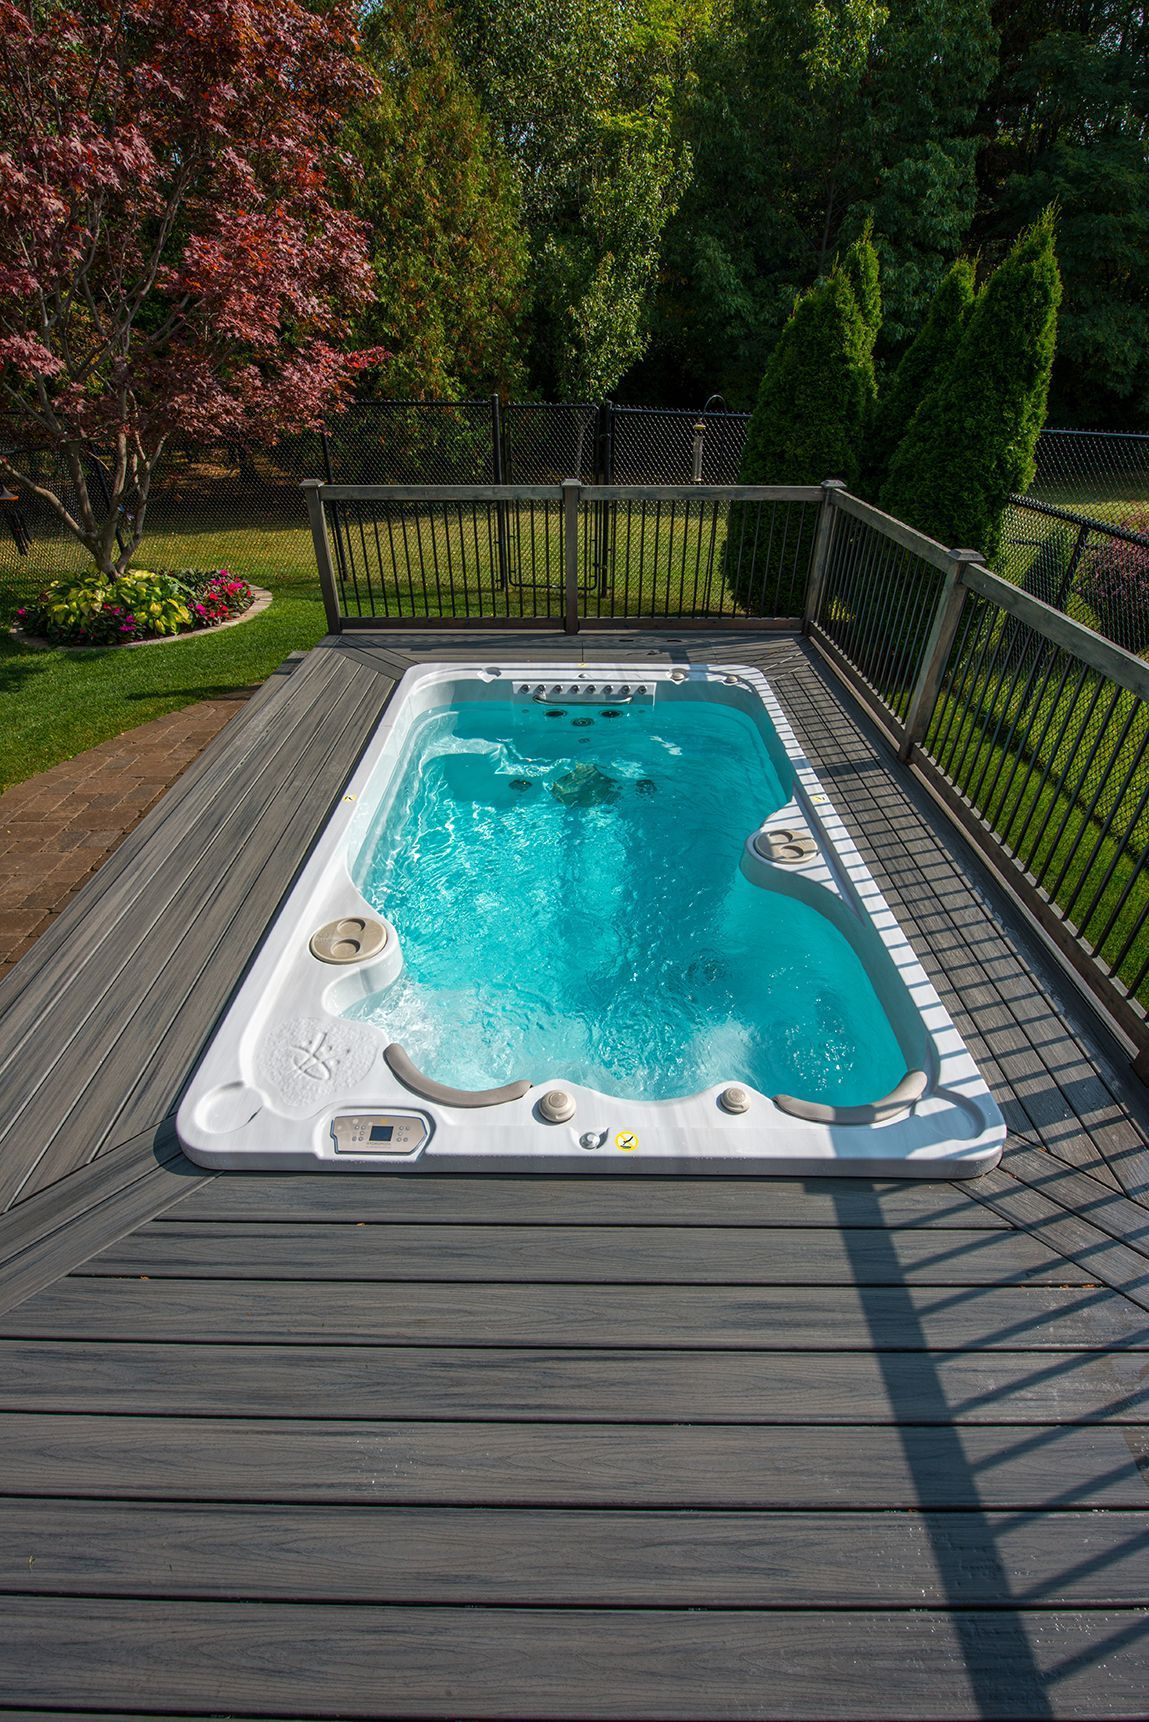 Don T Like The Above Ground Look Surround Your Swim Spa With A Deck To Give It A More Premium Look Hot Tub Backyard Swim Spa Deck Pool Hot Tub